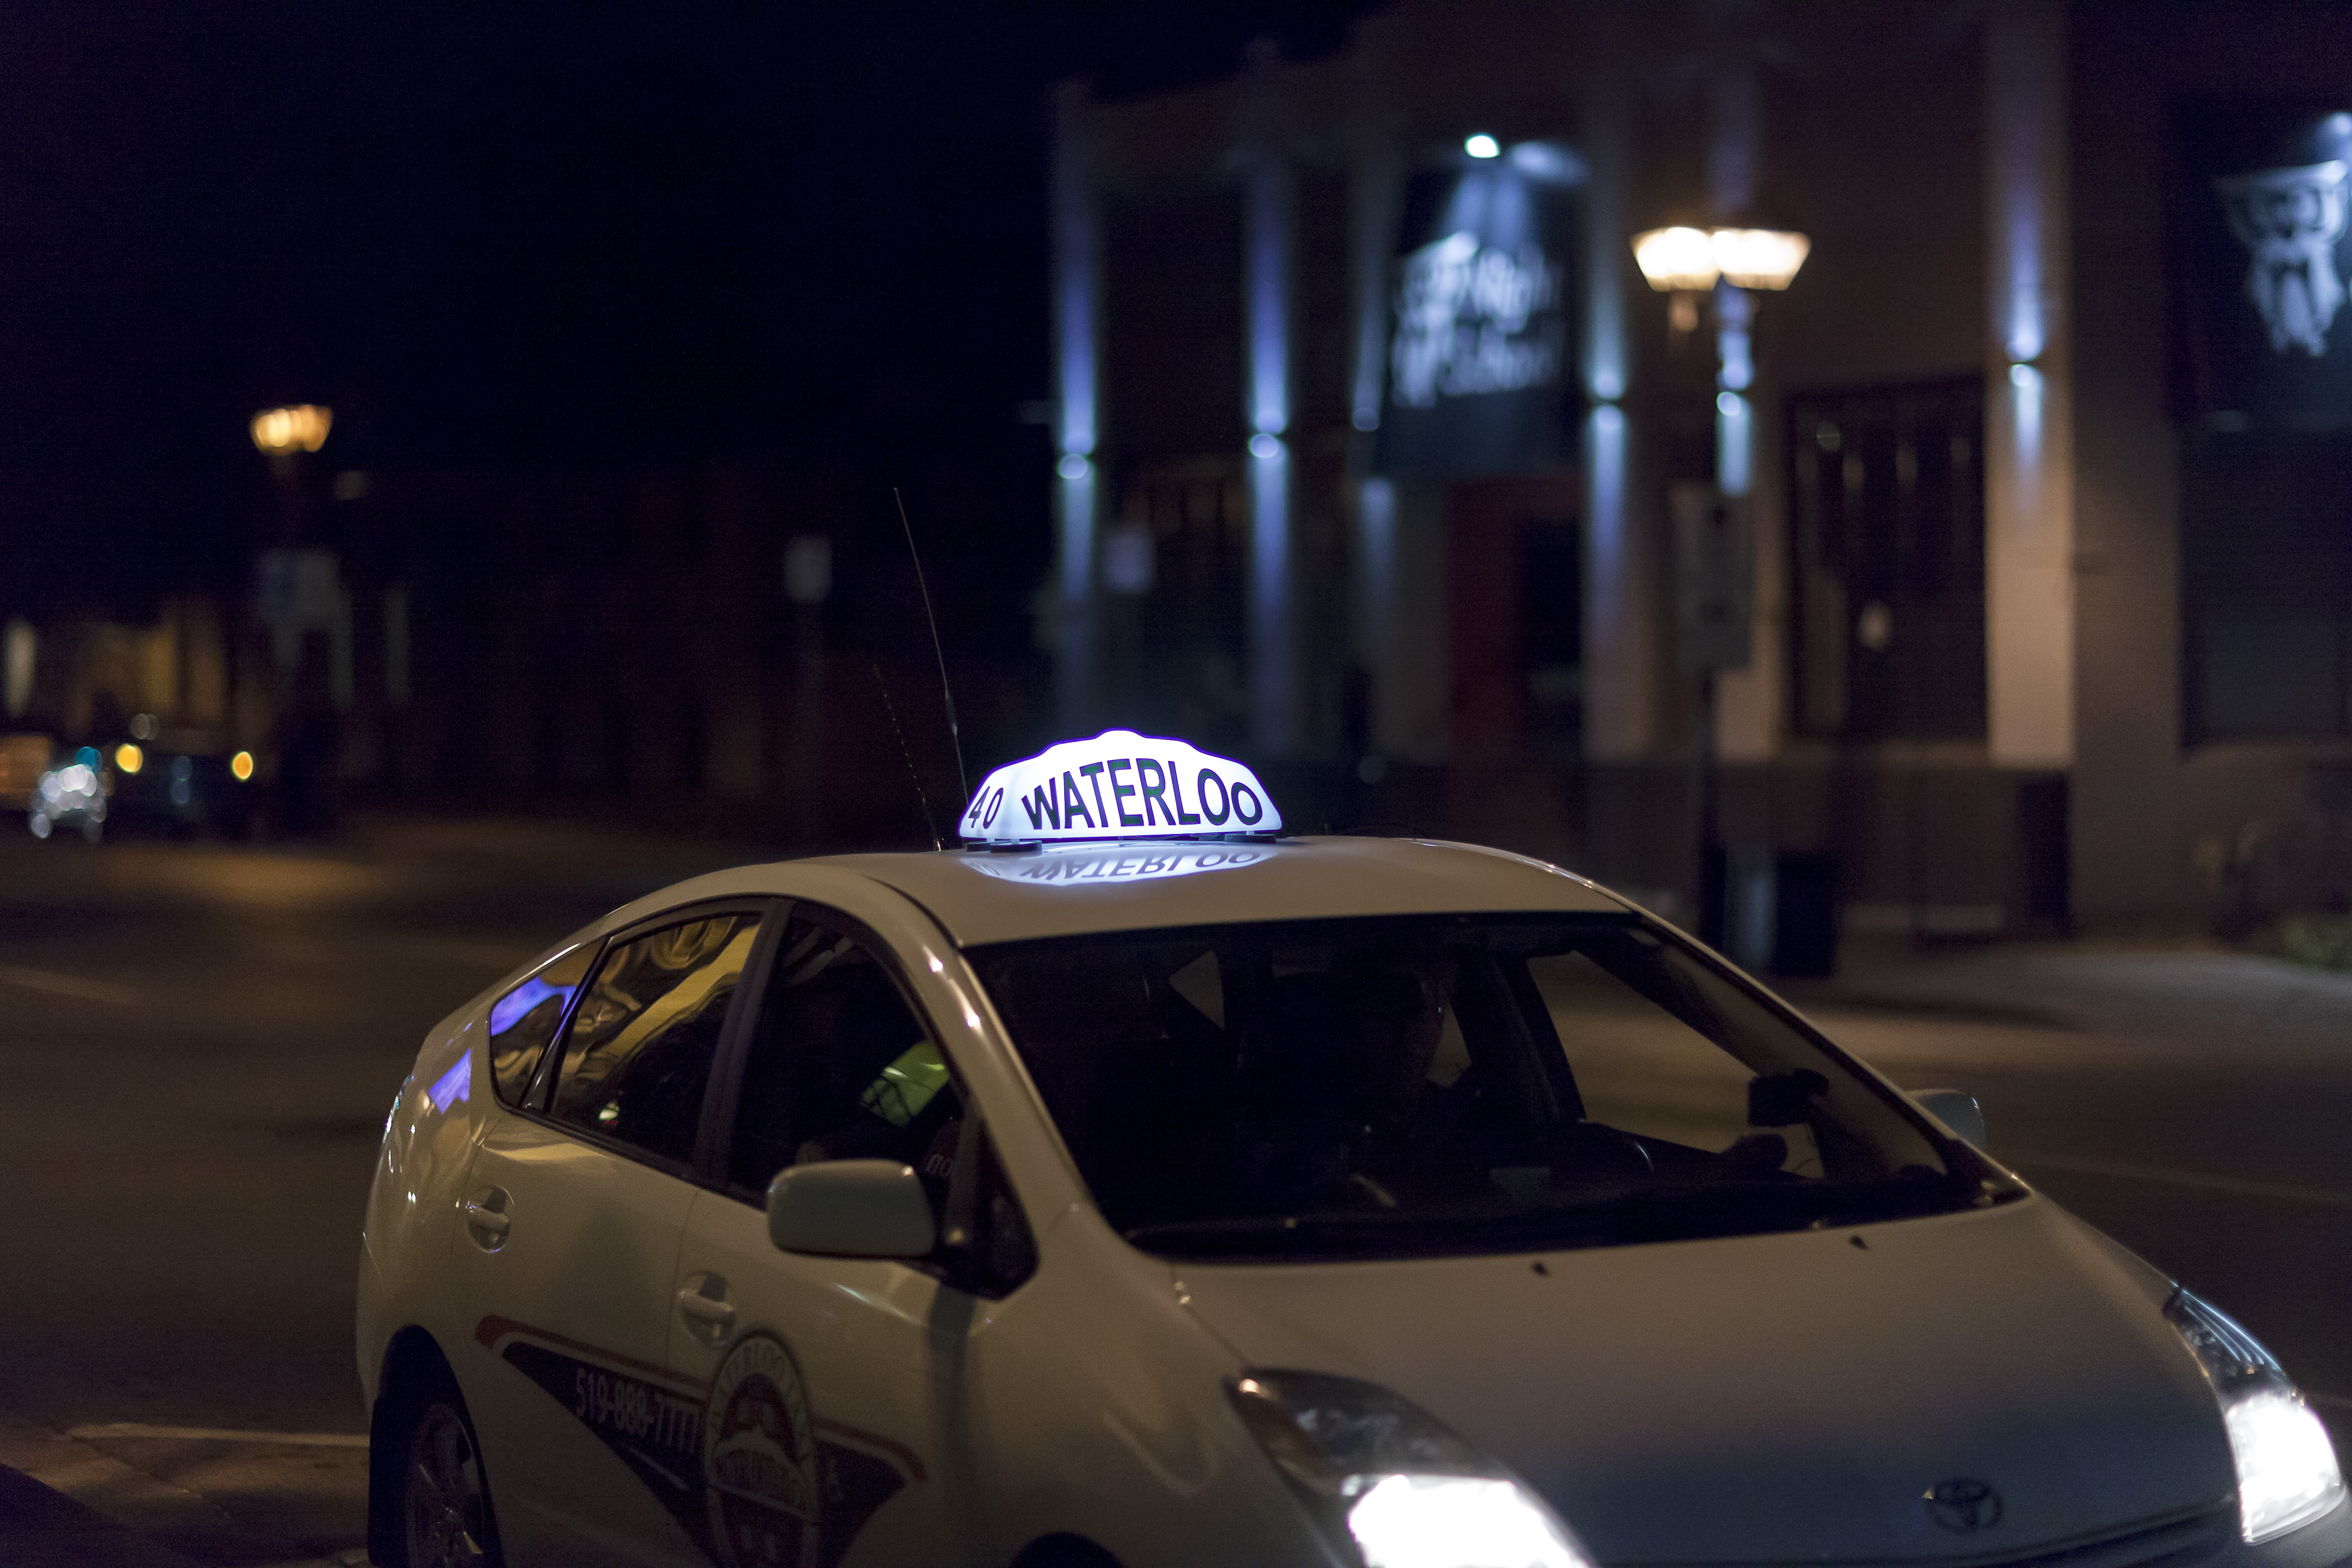 Local cabs to be equipped with cameras